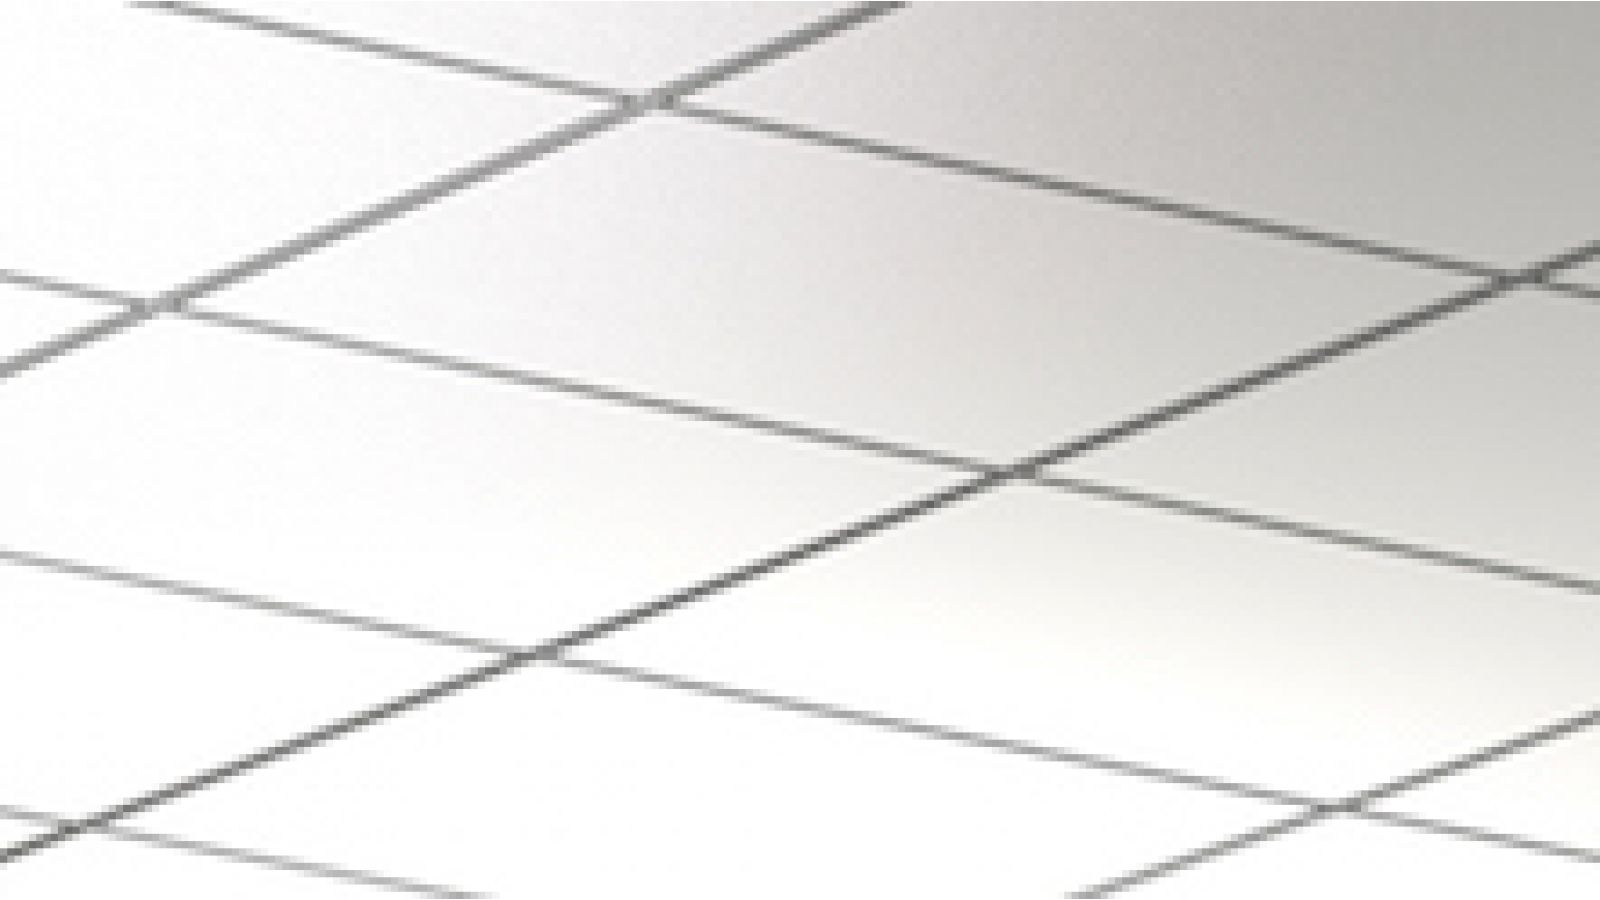 Rockfon Chicago Metallic Integrity 4200 double reveal ceiling system